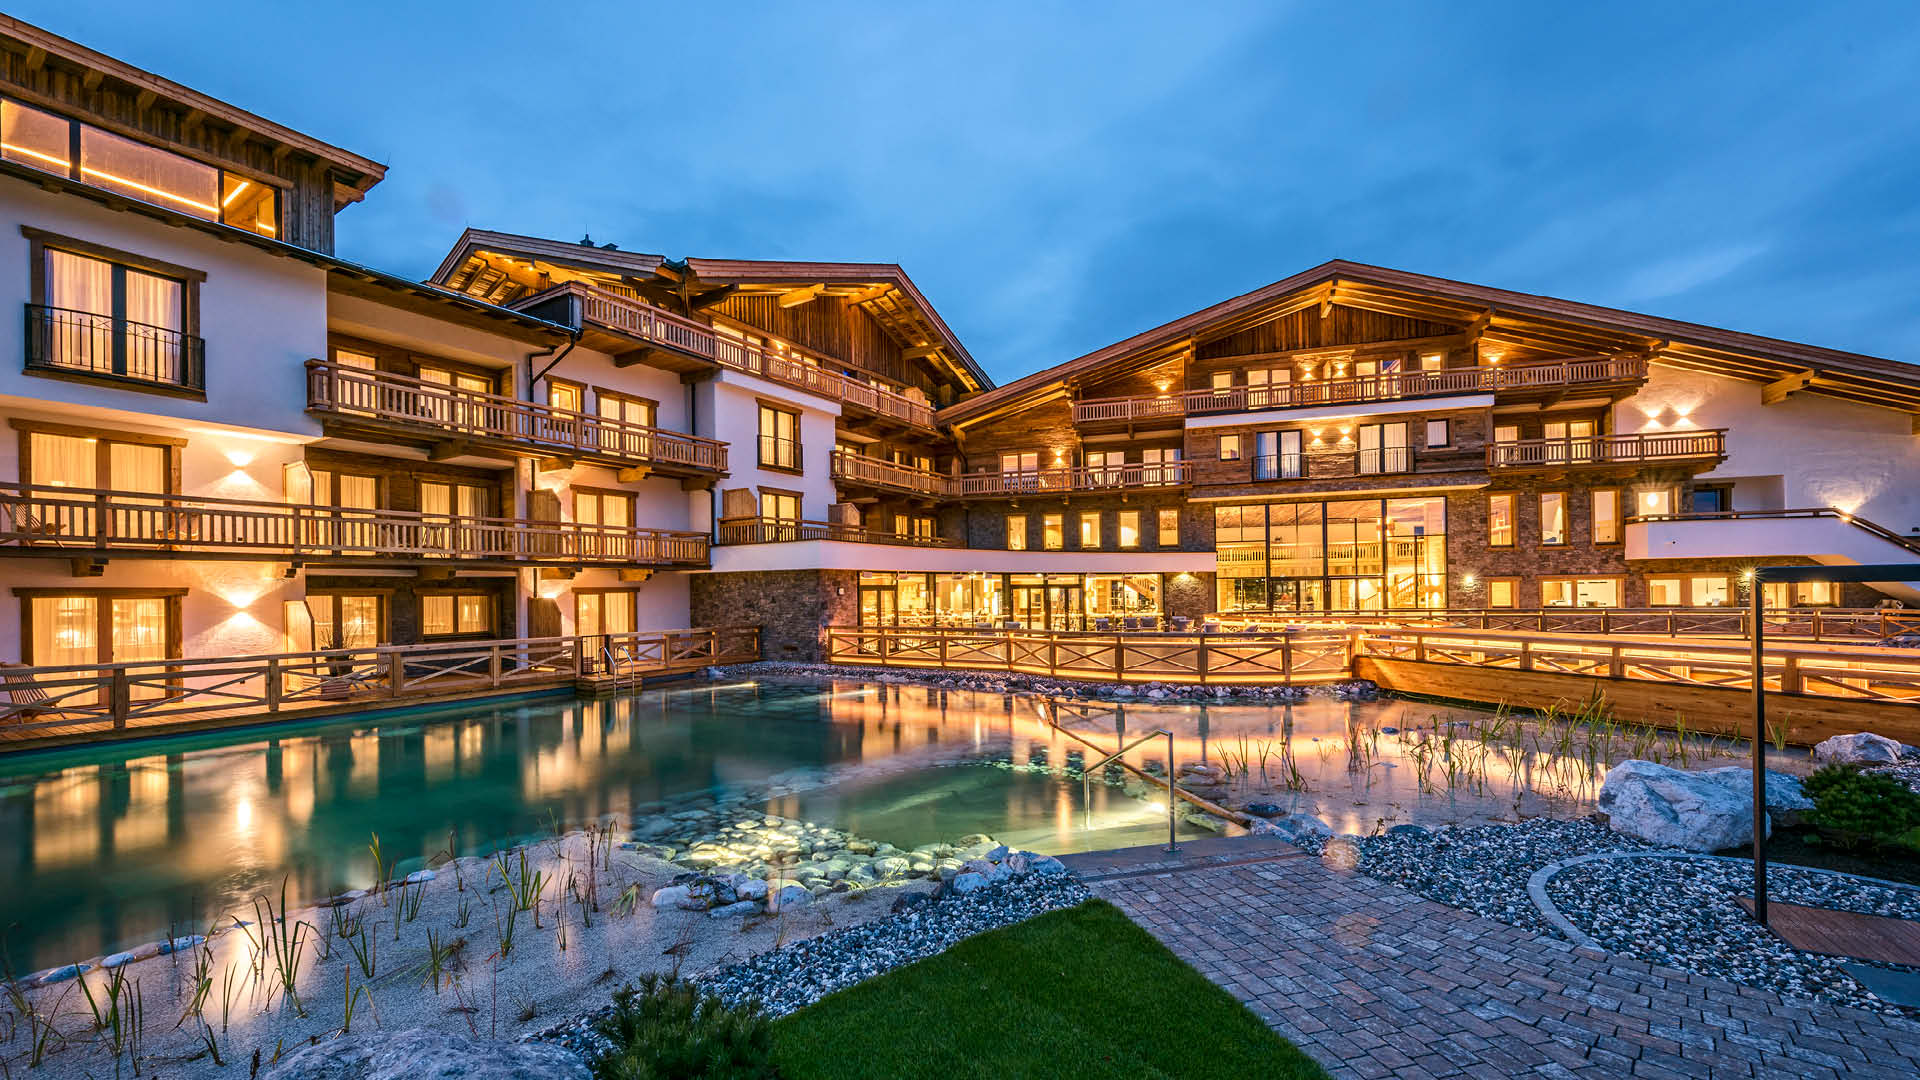 Luxury resort on the Alps